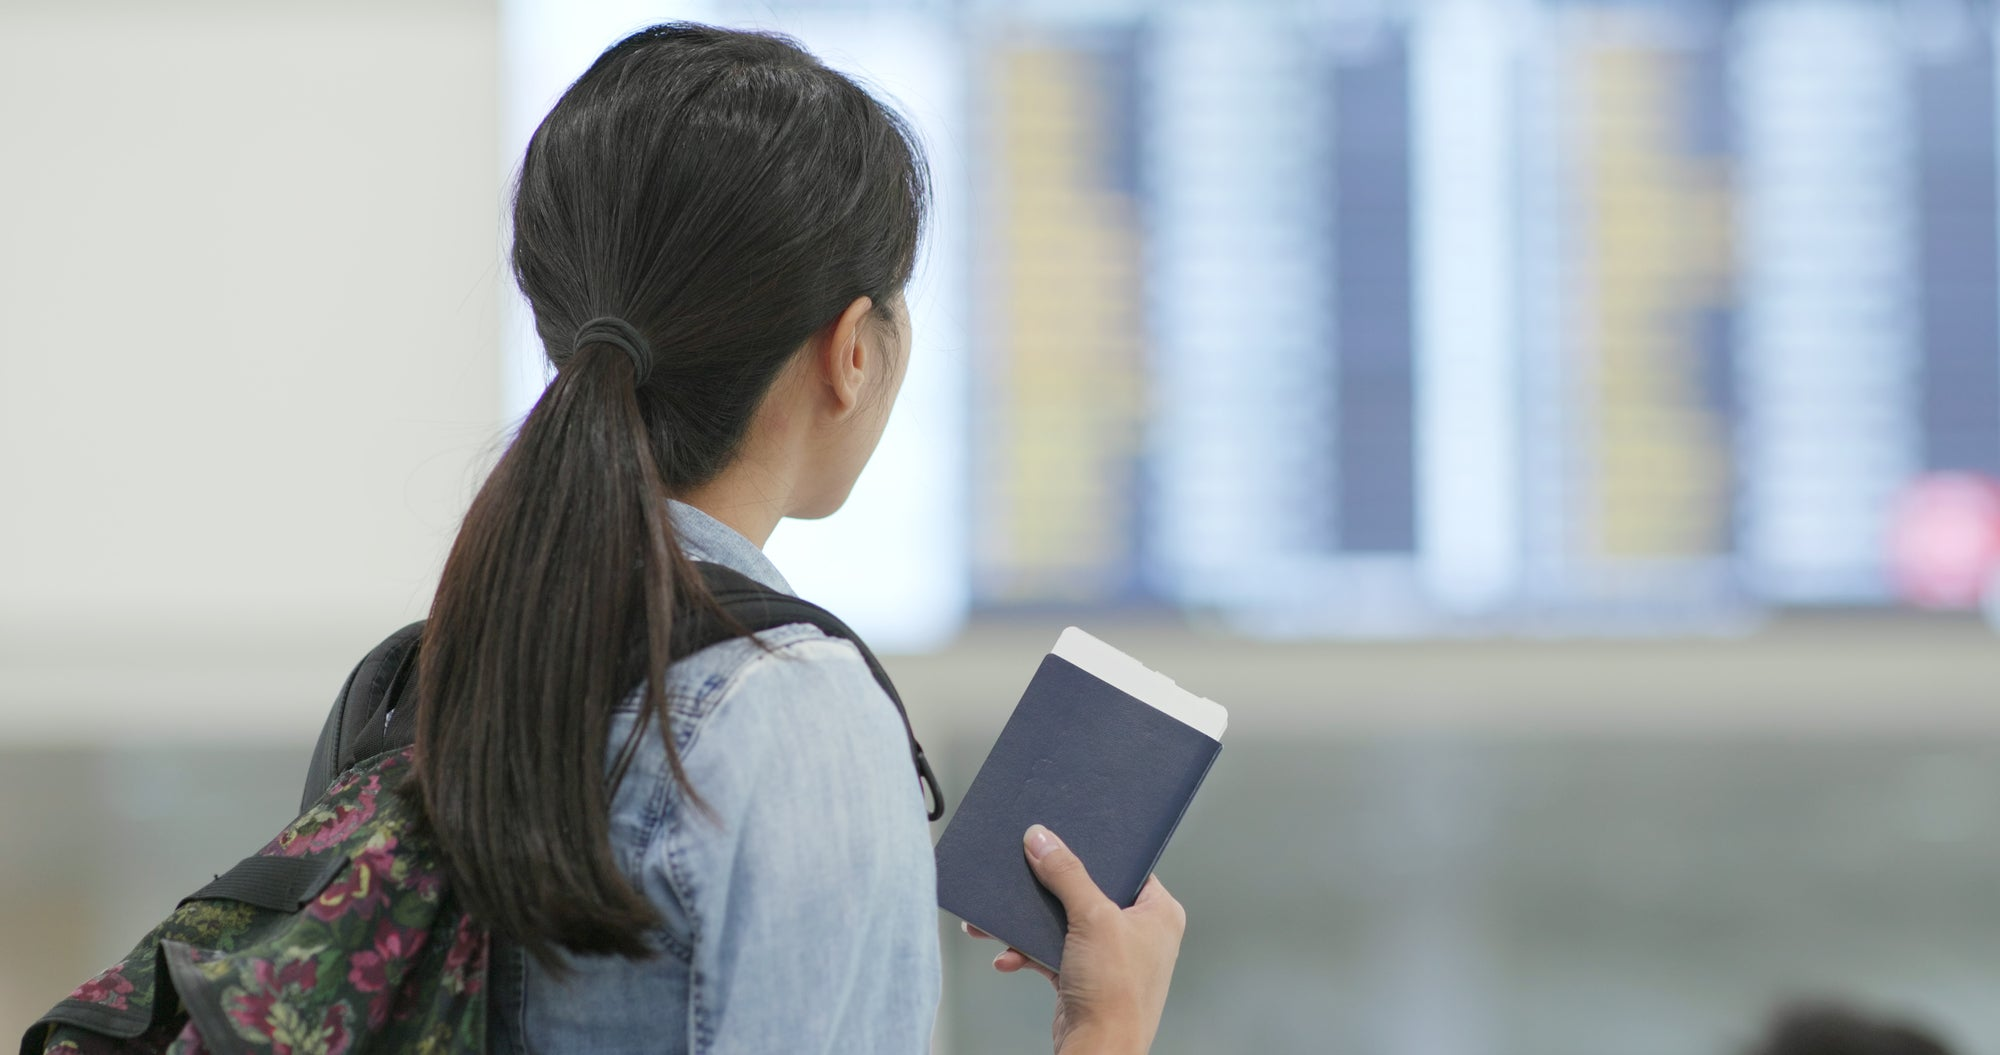 A young asian woman stands in an airport holding a passport